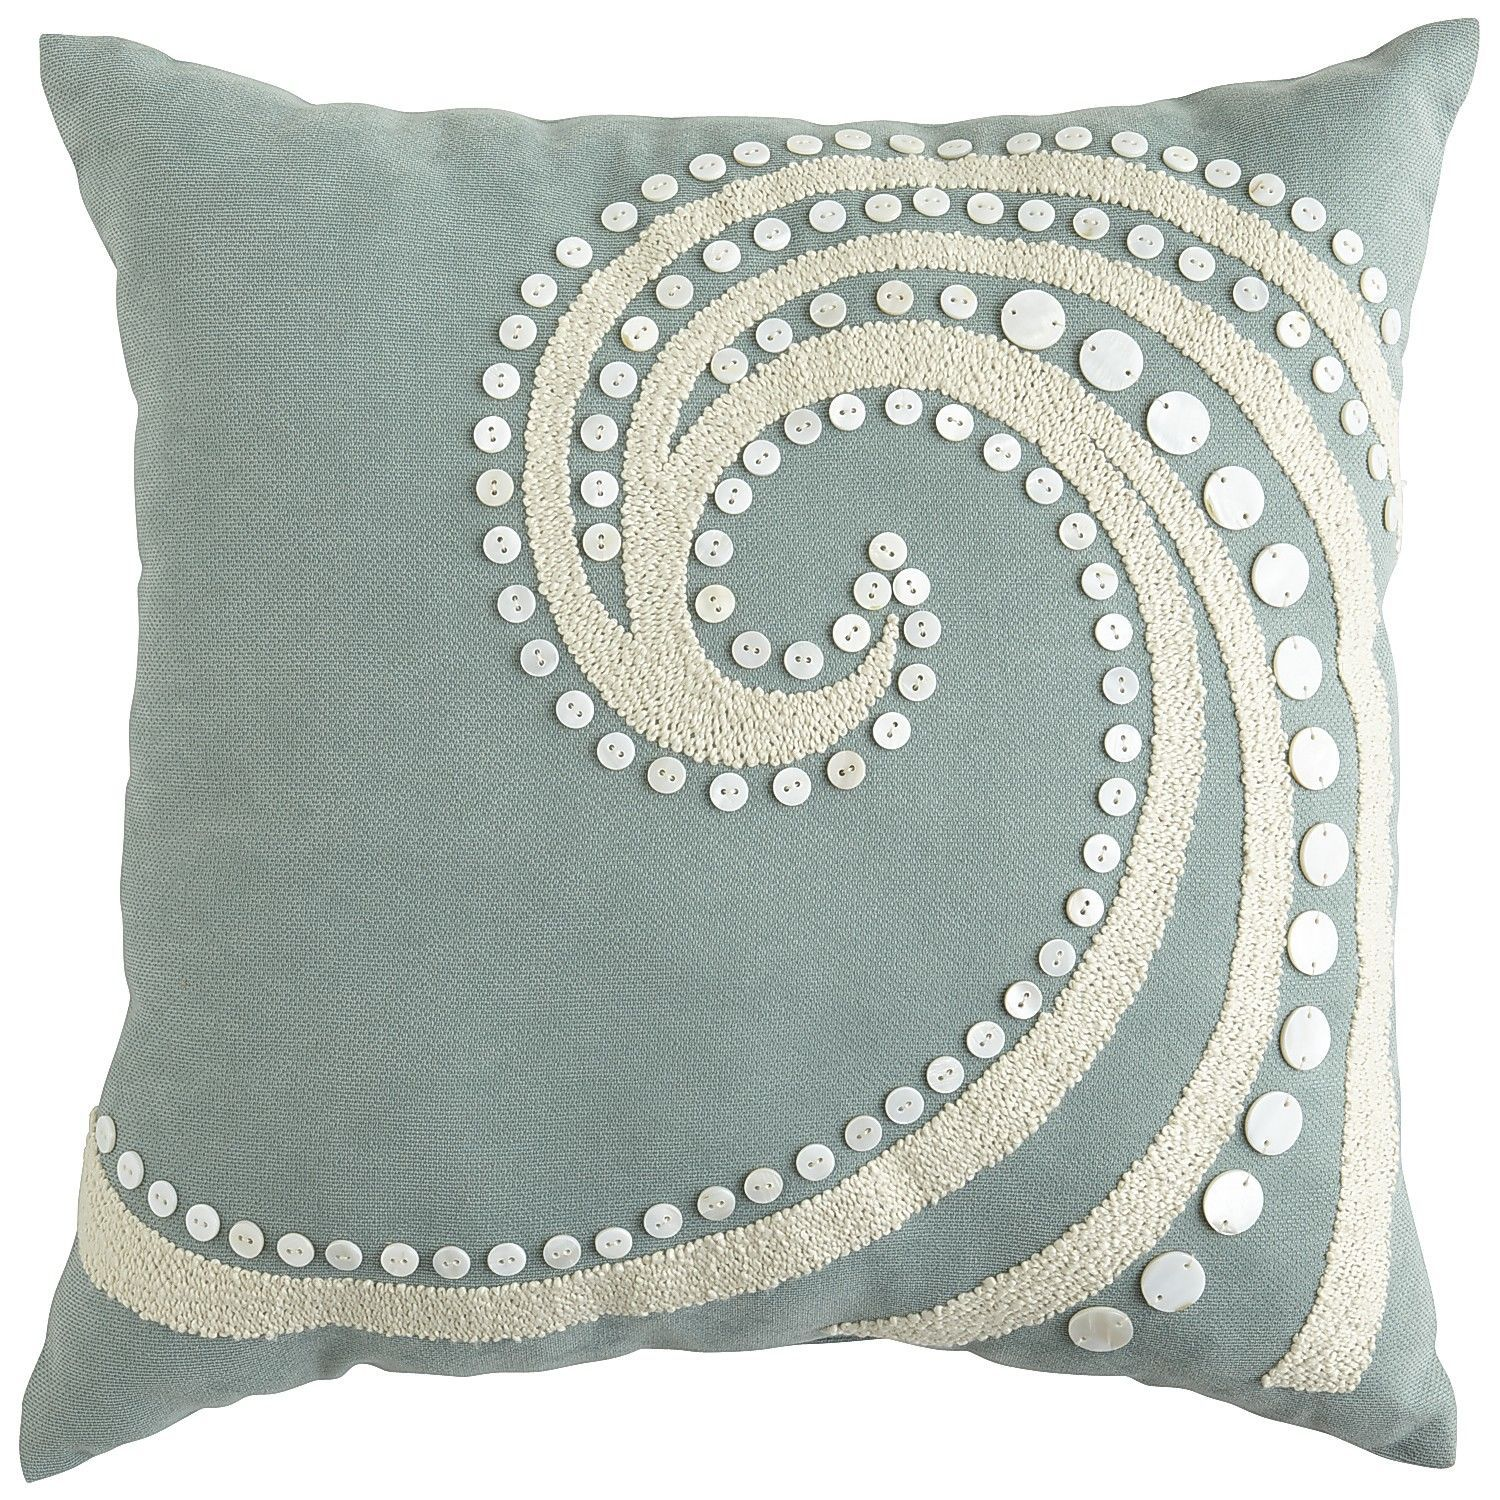 Fantastic Mother Of Pearl Beaded Wave Pillow Pier 1 Imports Diy Onthecornerstone Fun Painted Chair Ideas Images Onthecornerstoneorg